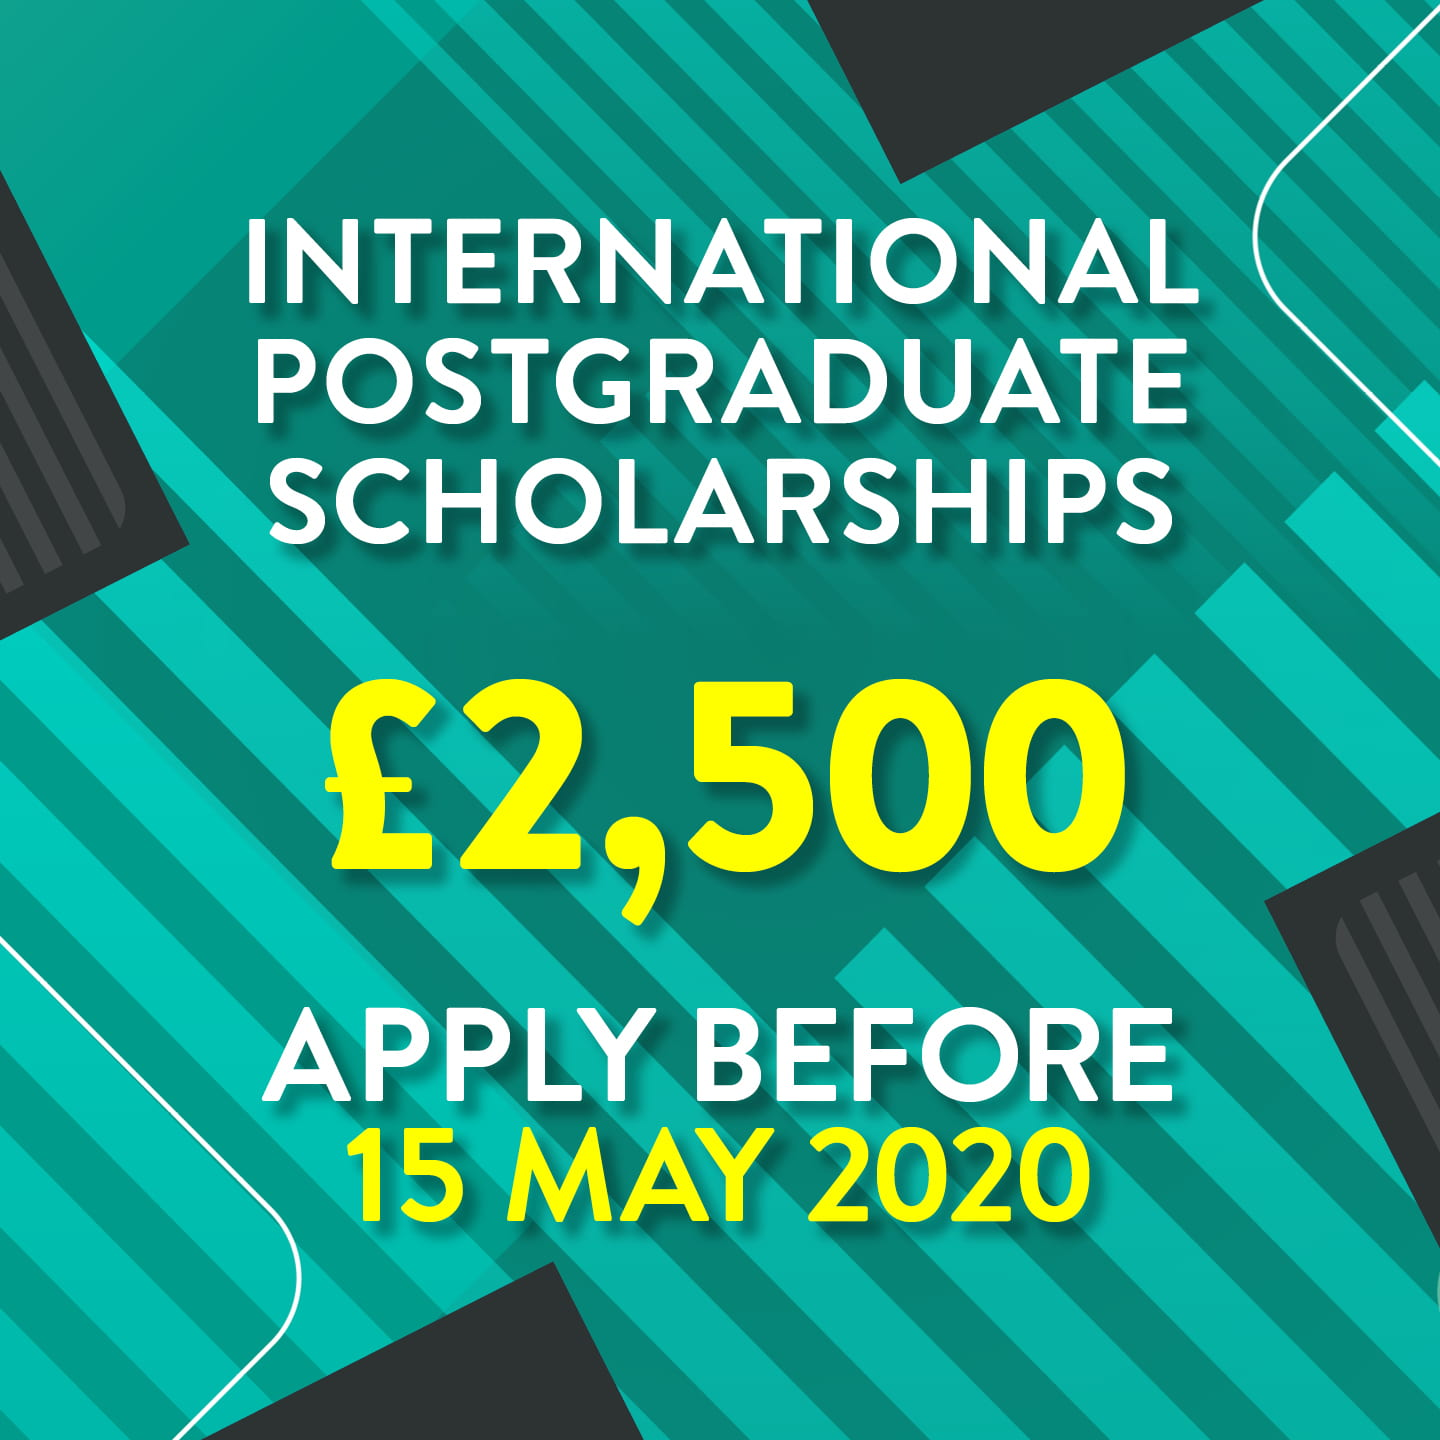 image showing scholarship value and deadline date